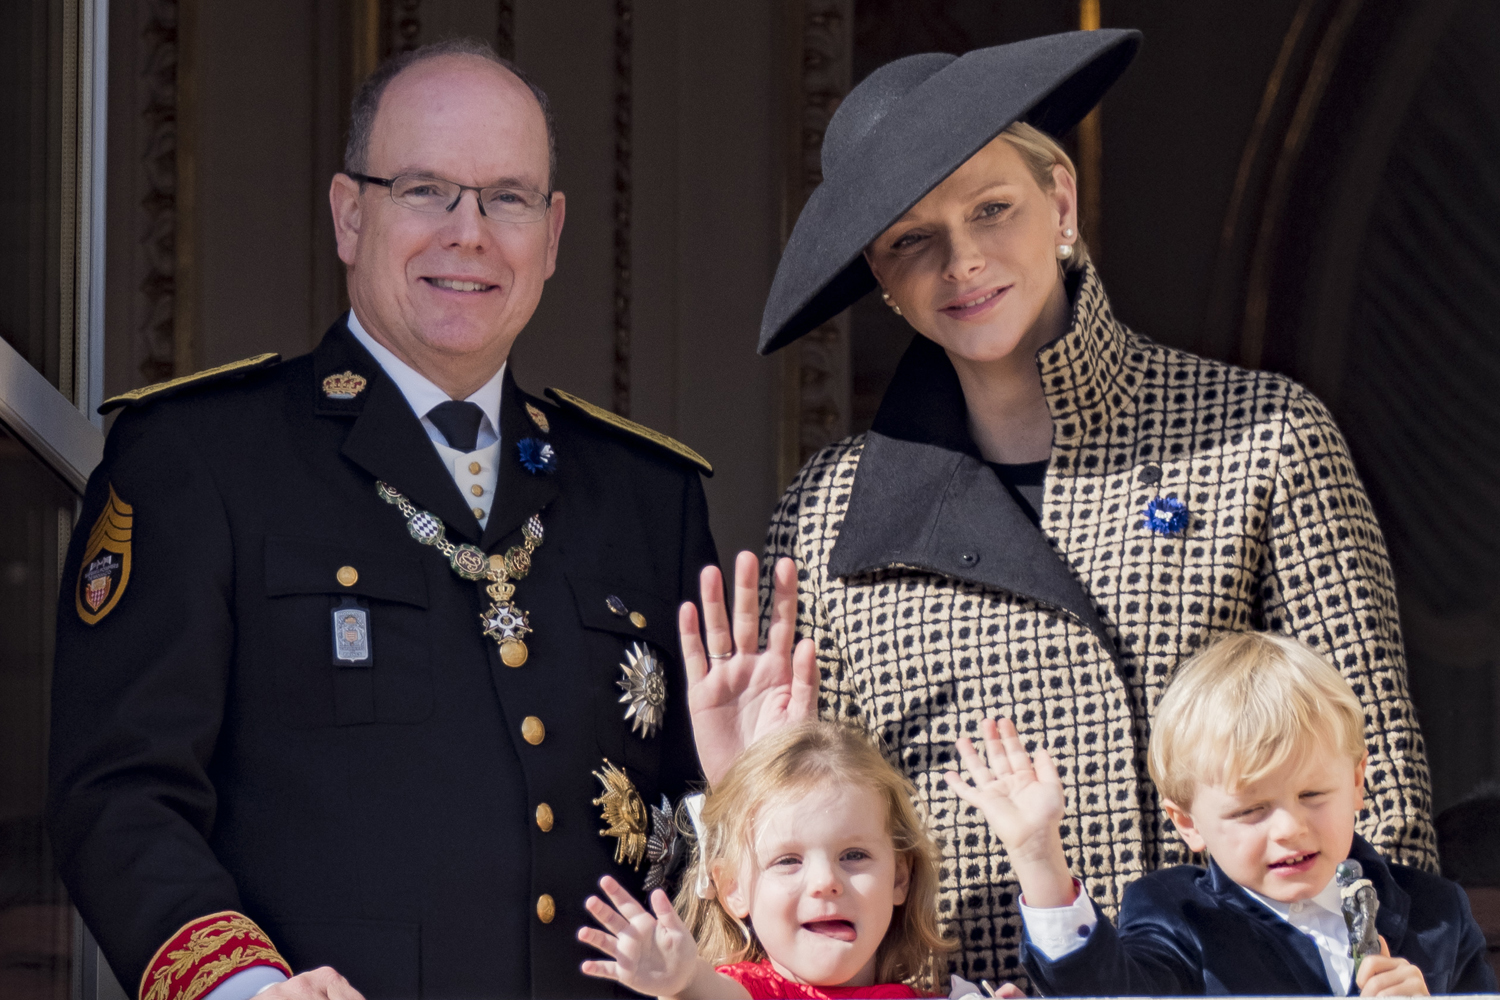 Prince Albert II of Monaco and Princess Charlene of Monaco with their children Prince Jacques of Monaco and Princess Gabriella of Monaco